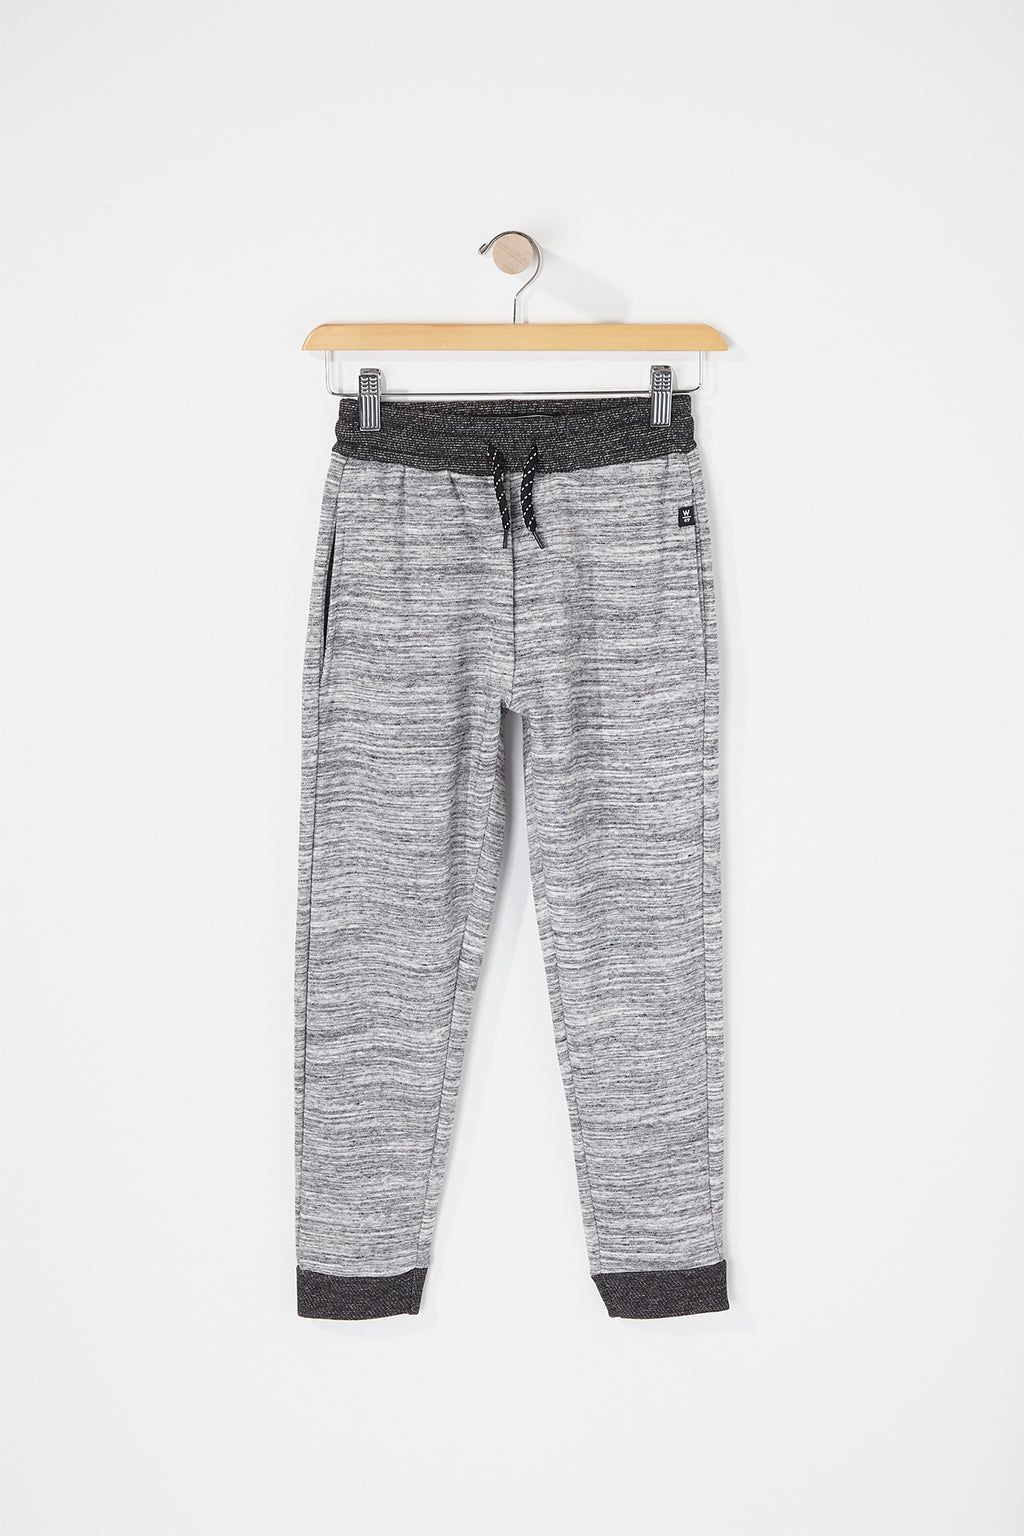 West49 Boys Grey Sweatpants